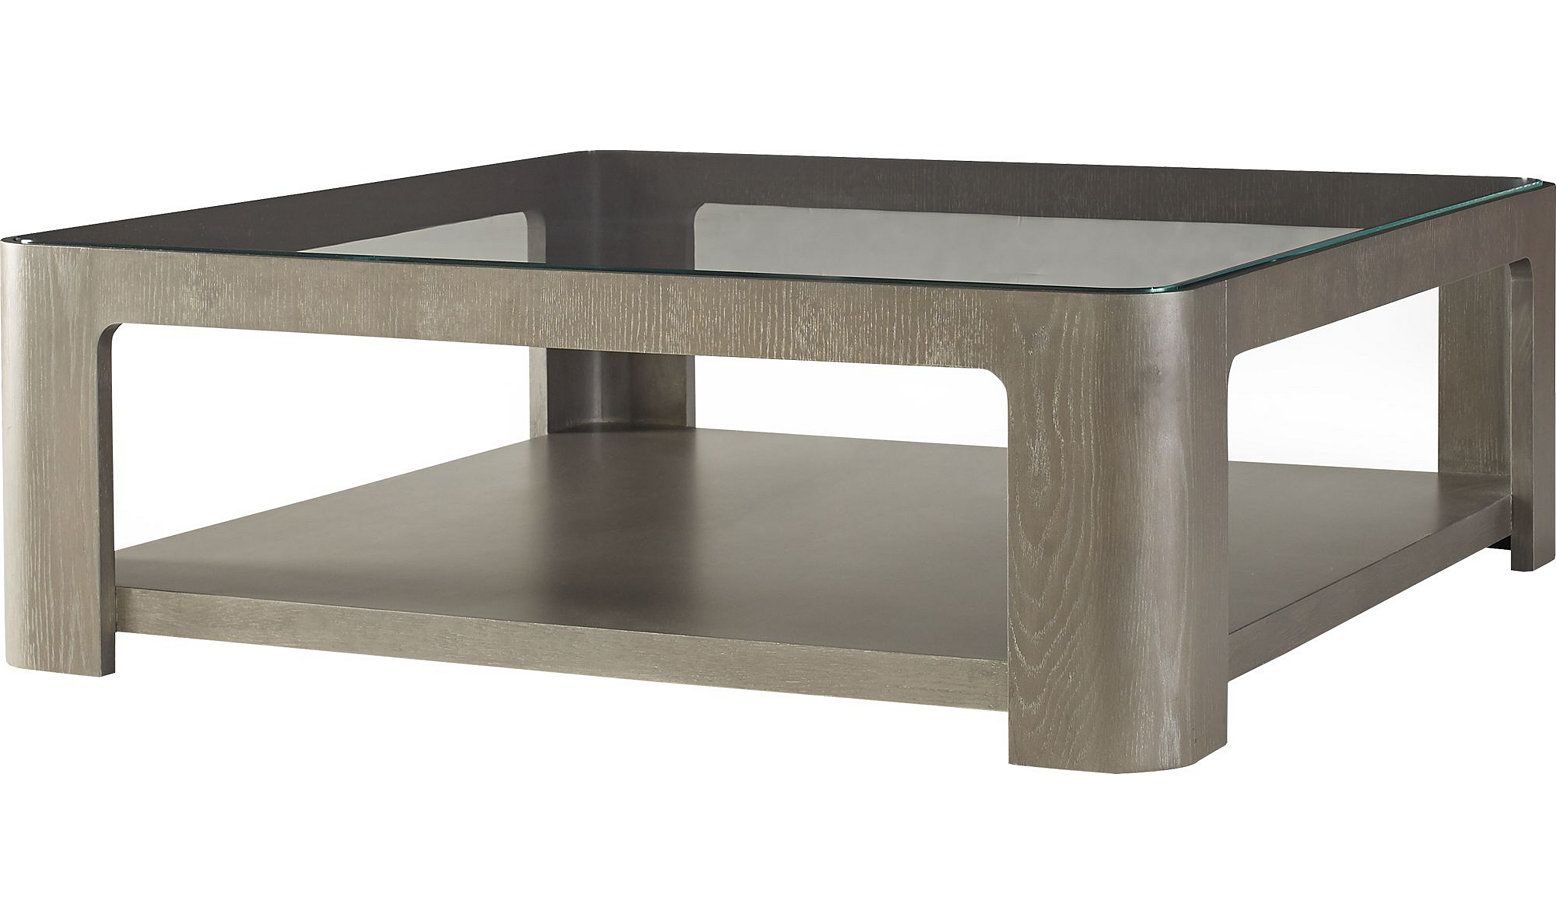 Marin Cocktail Table By Barbara Barry 3353 Baker Furniture Coffee Table Inspiration Living Room Sets Furniture Baker Furniture [ 924 x 1556 Pixel ]